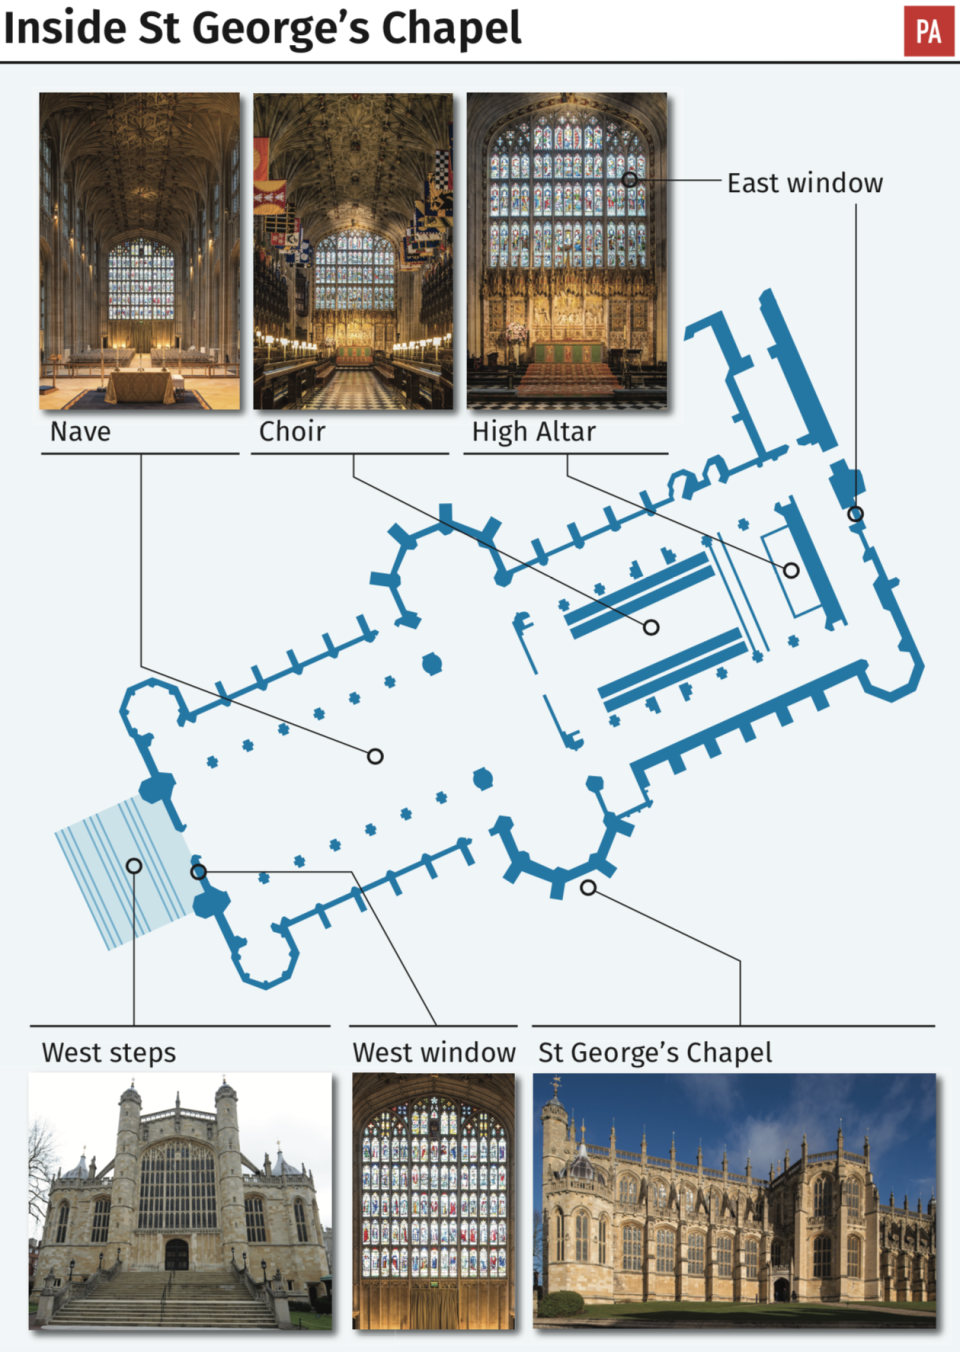 St George's Chapel in Windsor [Photo: PA]